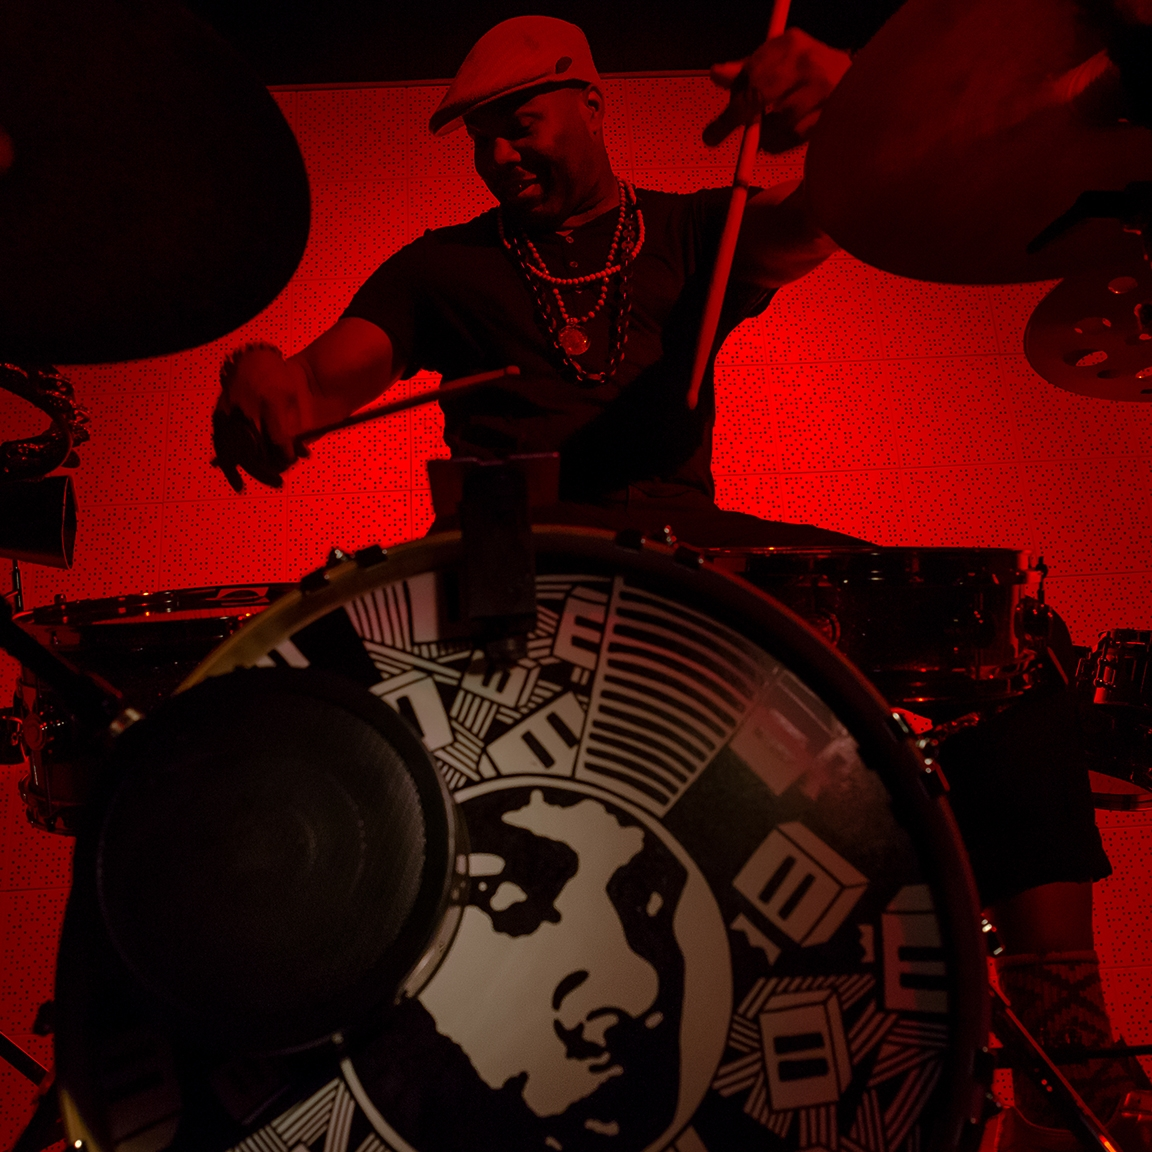 DARU JONES : (drummer, producer, music director) JACK WHITE, JAMIE LIDELL, BLACK MILK,